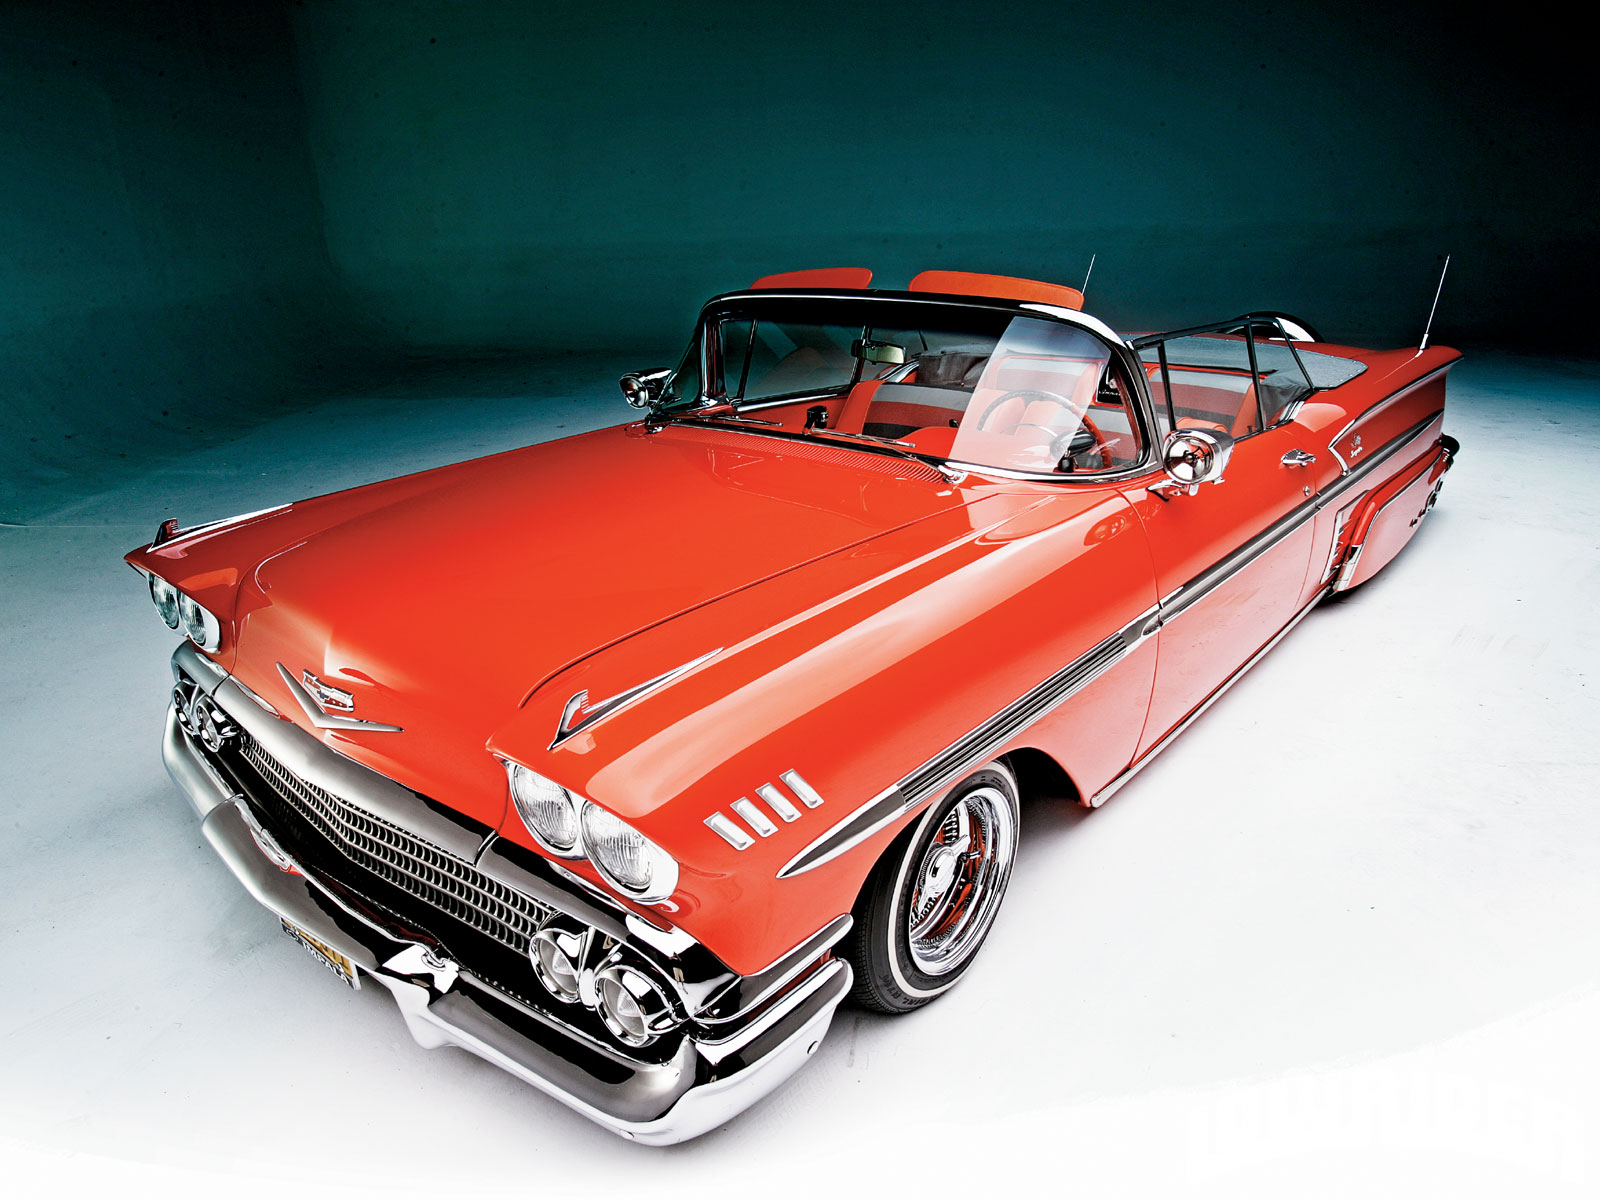 1958 Chevrolet Impala Convertible - Chevy 348 Tri Power ...